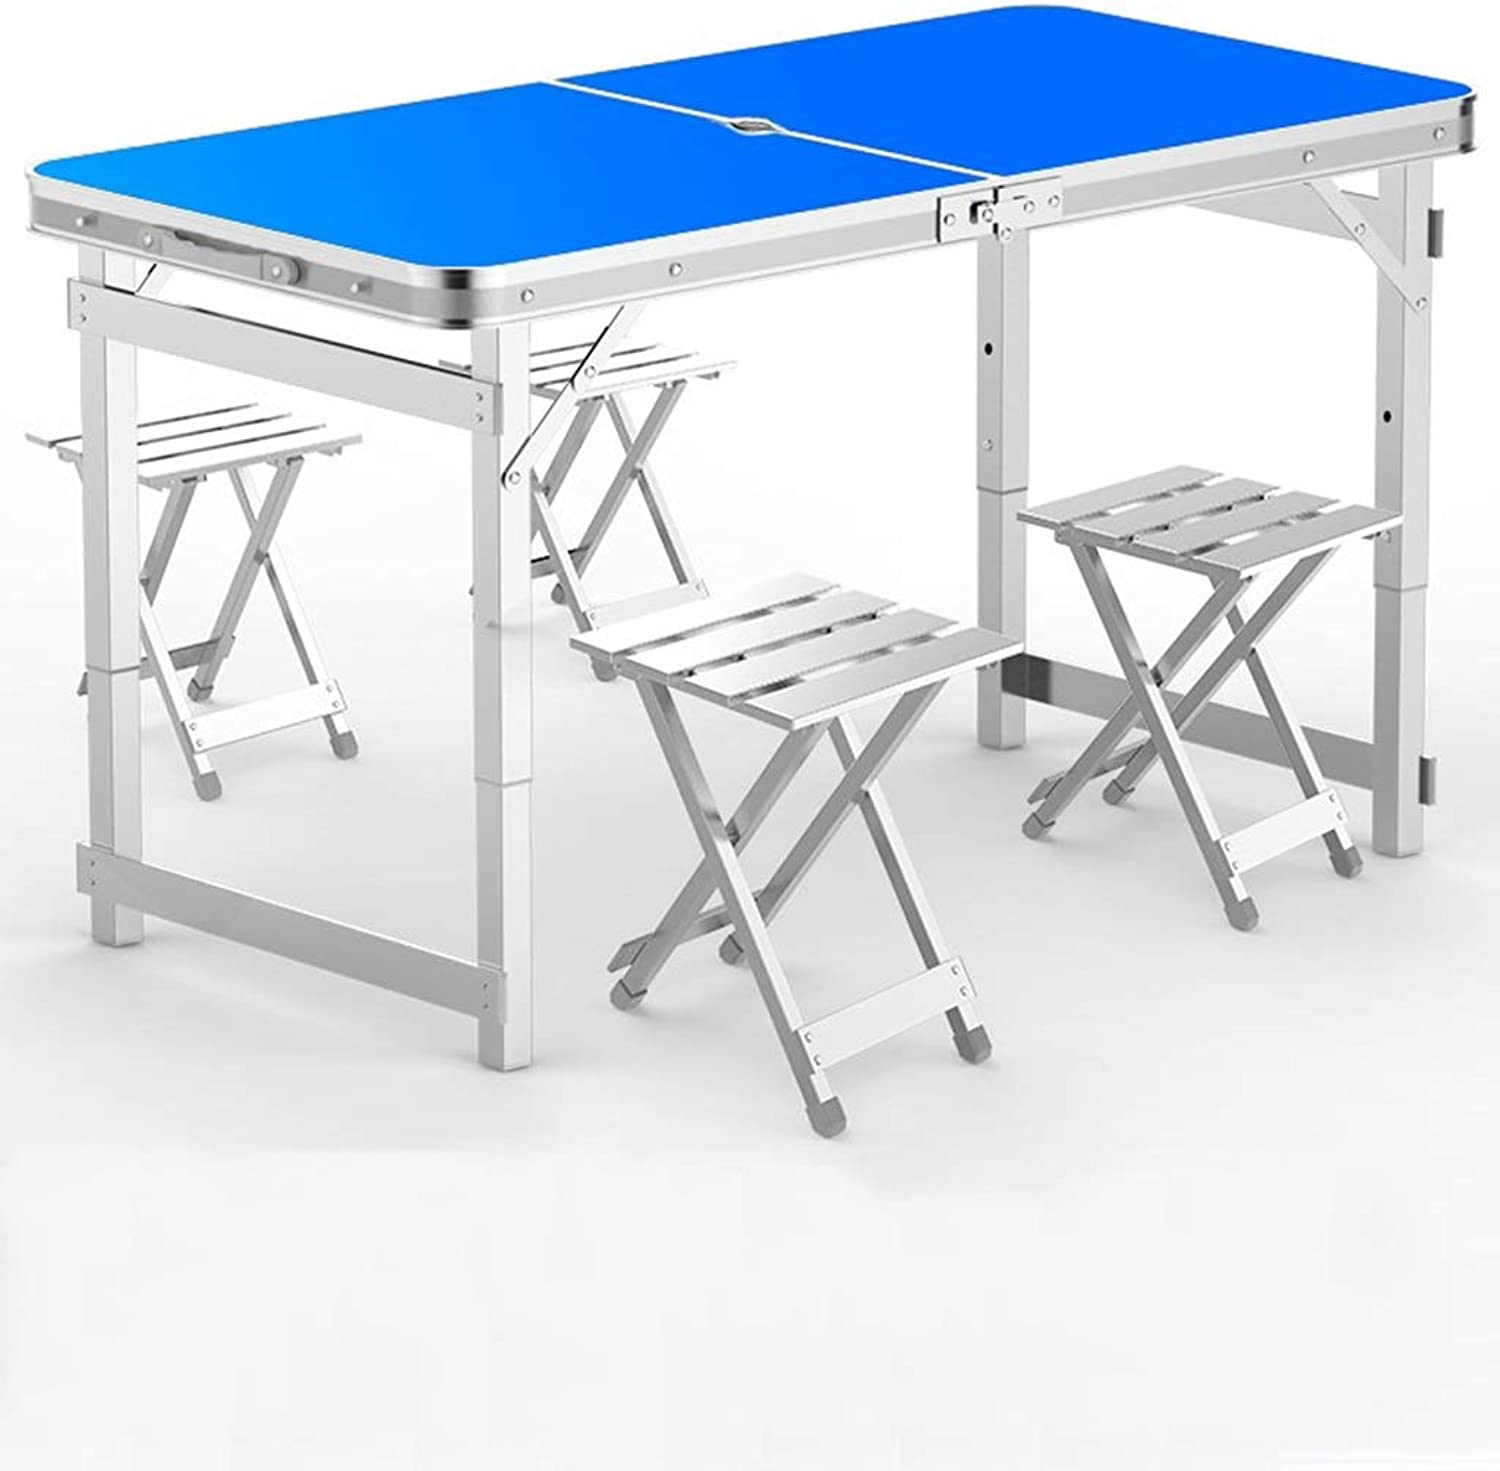 Folding Table, 4 Folding Picnic Table, 4 Aluminum Chairs, Portable Outdoor Picnic Garden Dining Camping Outdoors (Size   A)